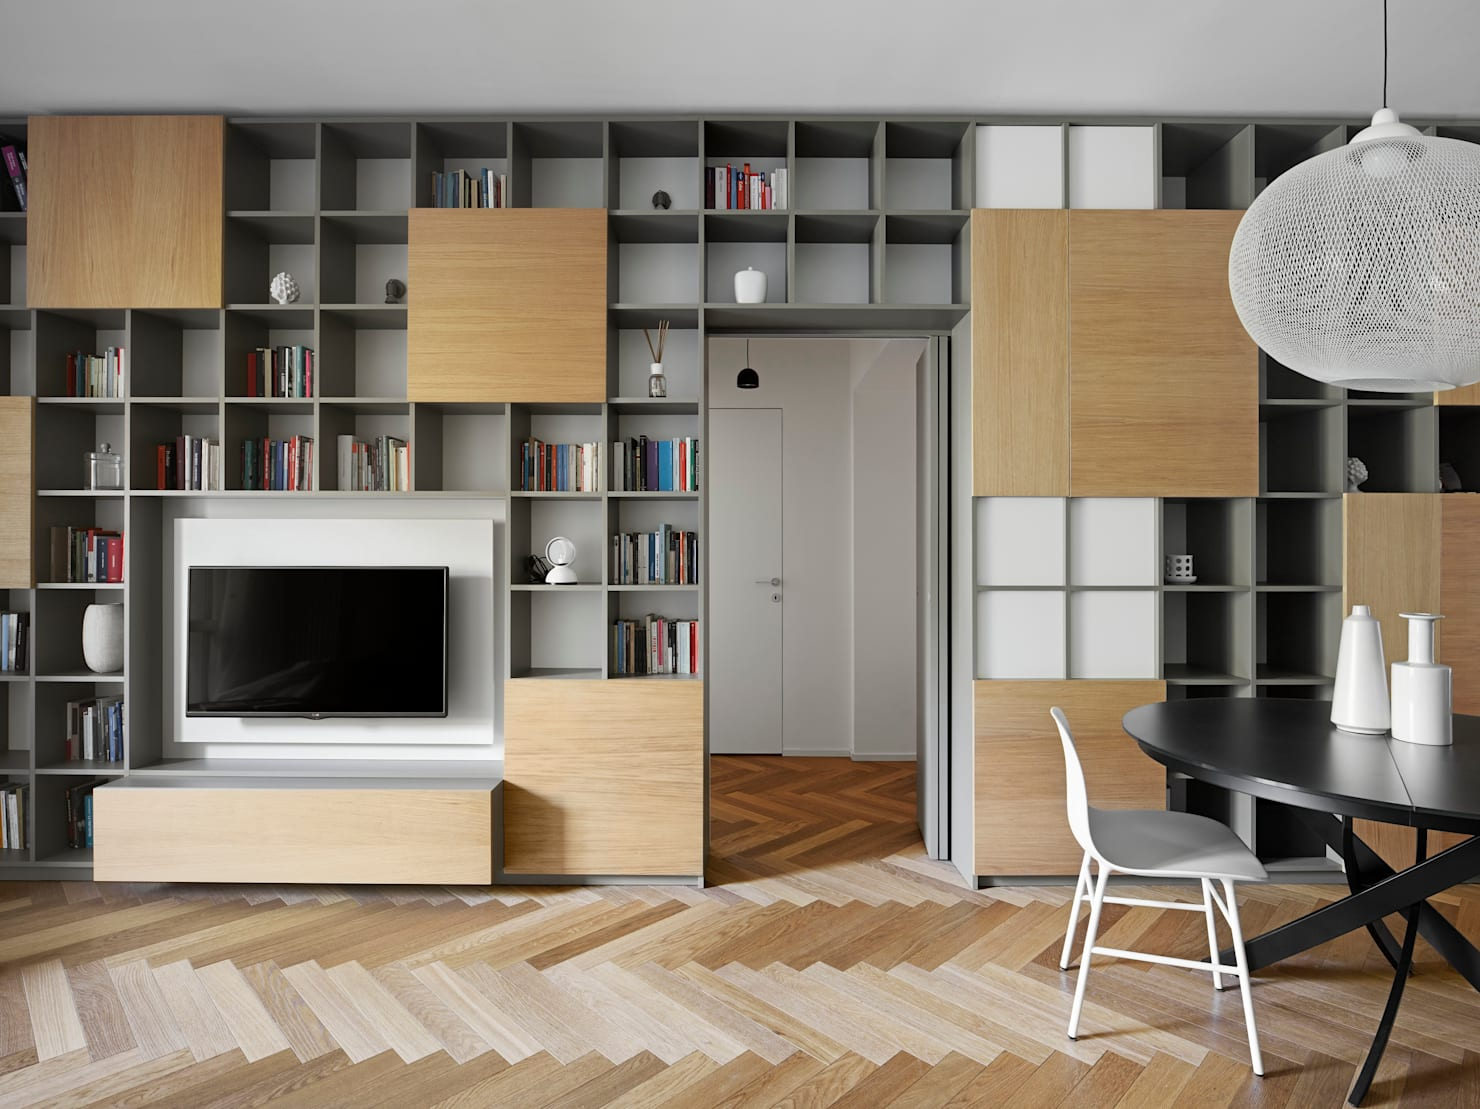 Geometry geeks: this apartment is for you!